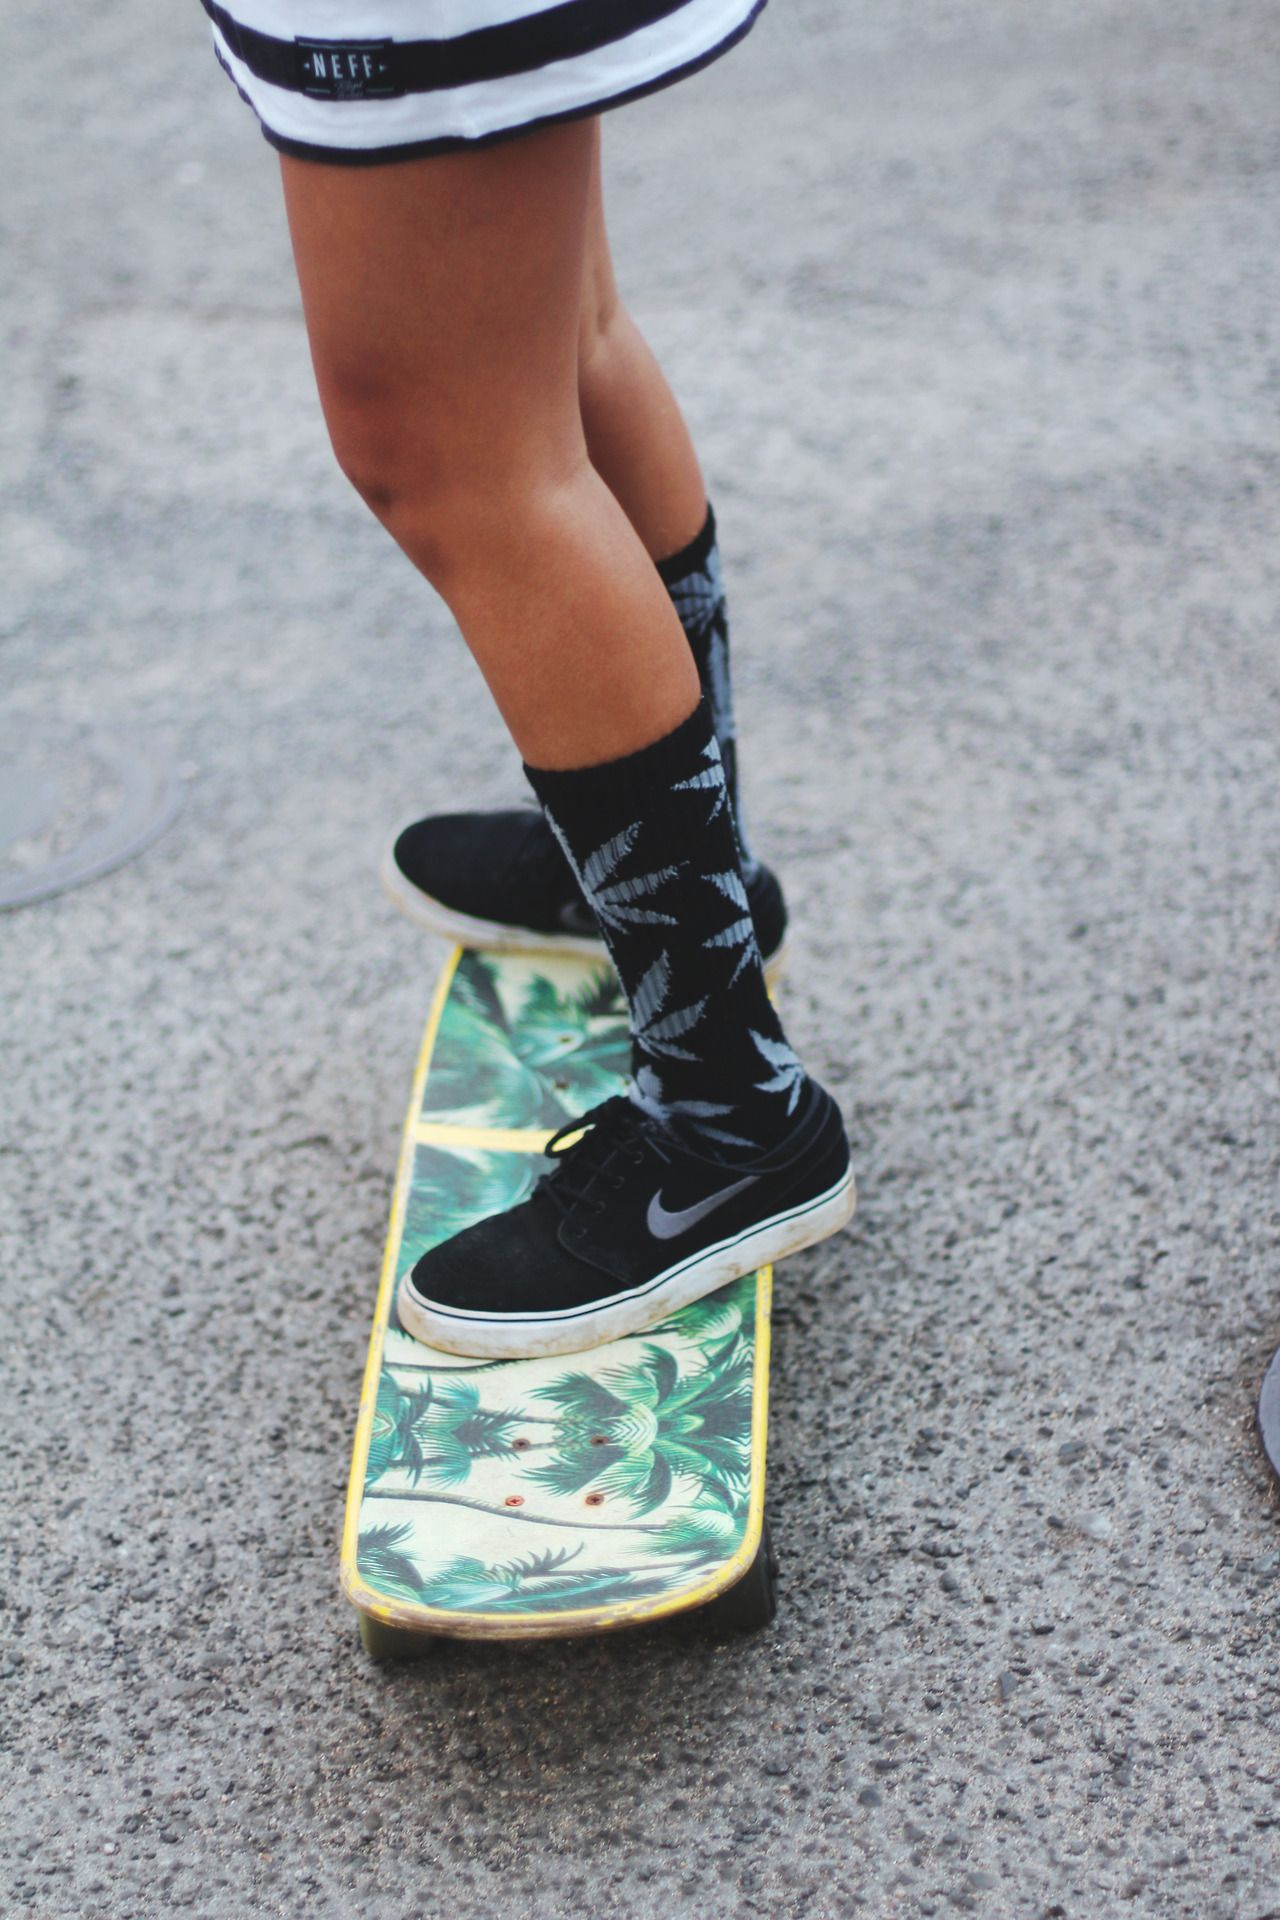 Tropical skate style in Honolulu, Oahu, Hawaii. Pineapple-themed deck with  long